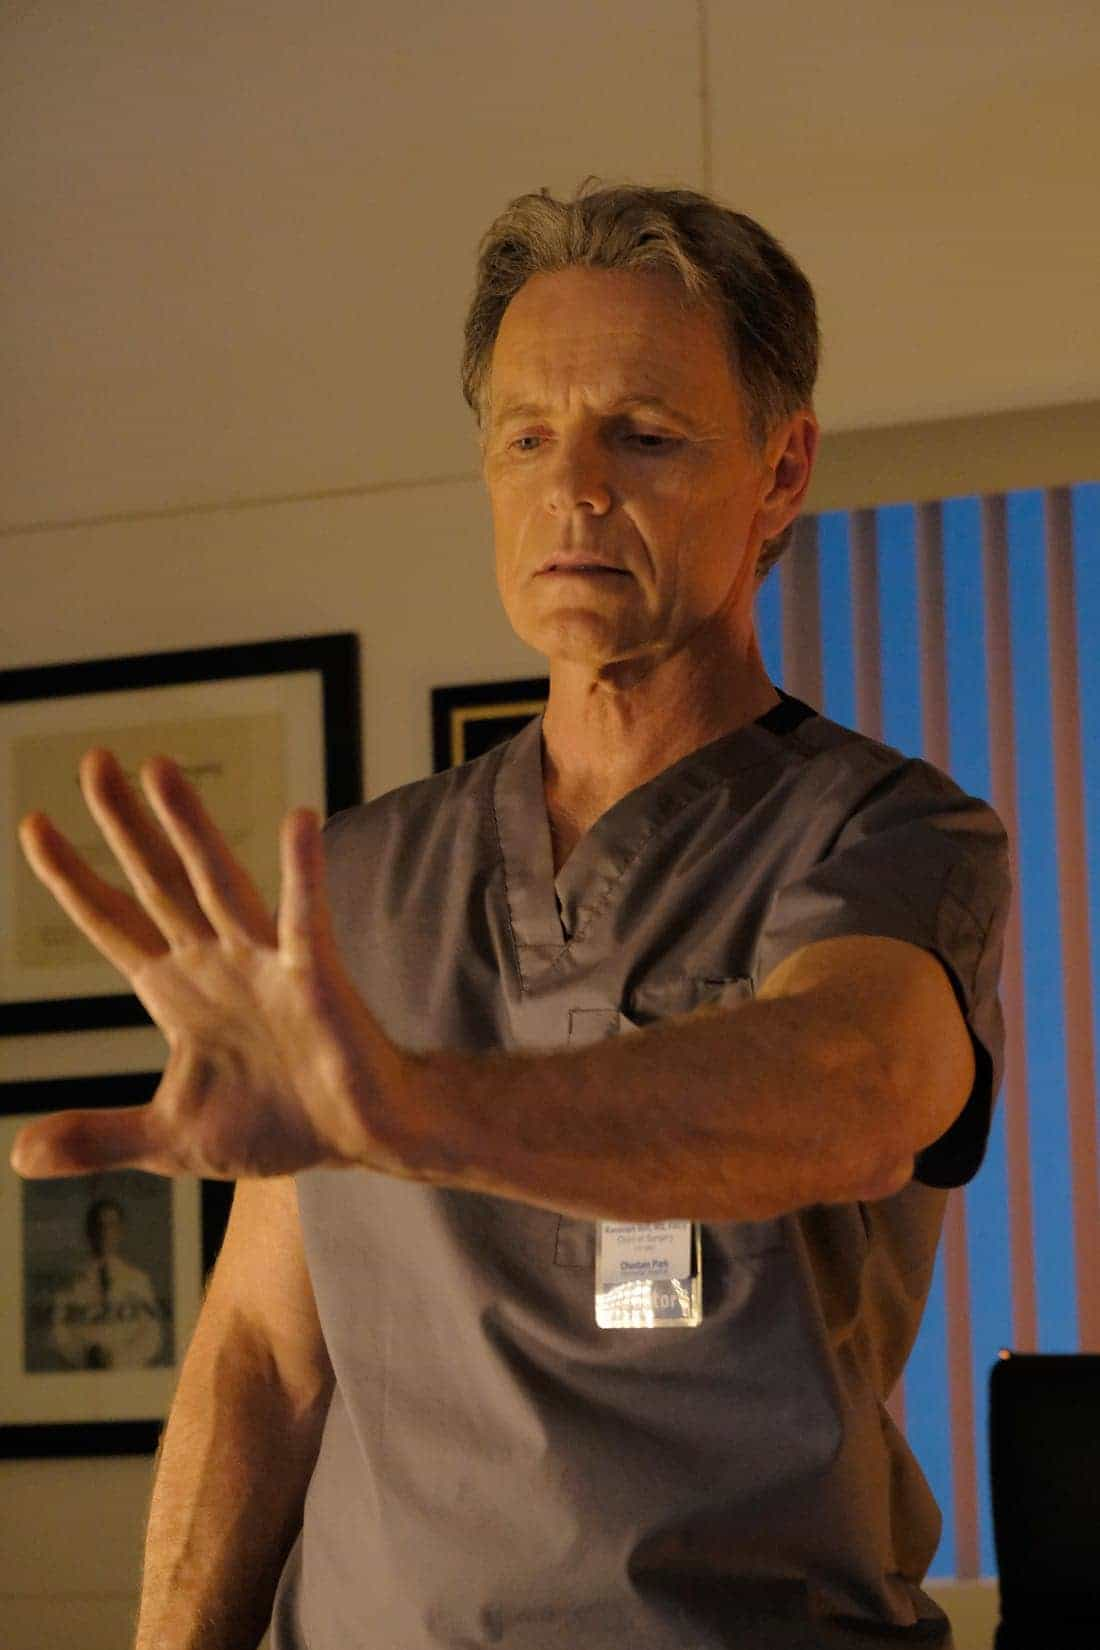 THE RESIDENT: Bruce Greenwood in THE RESIDENT premiering midseason on FOX. ©2017 Fox Broadcasting Co. Cr: Guy D'Alema/FOX